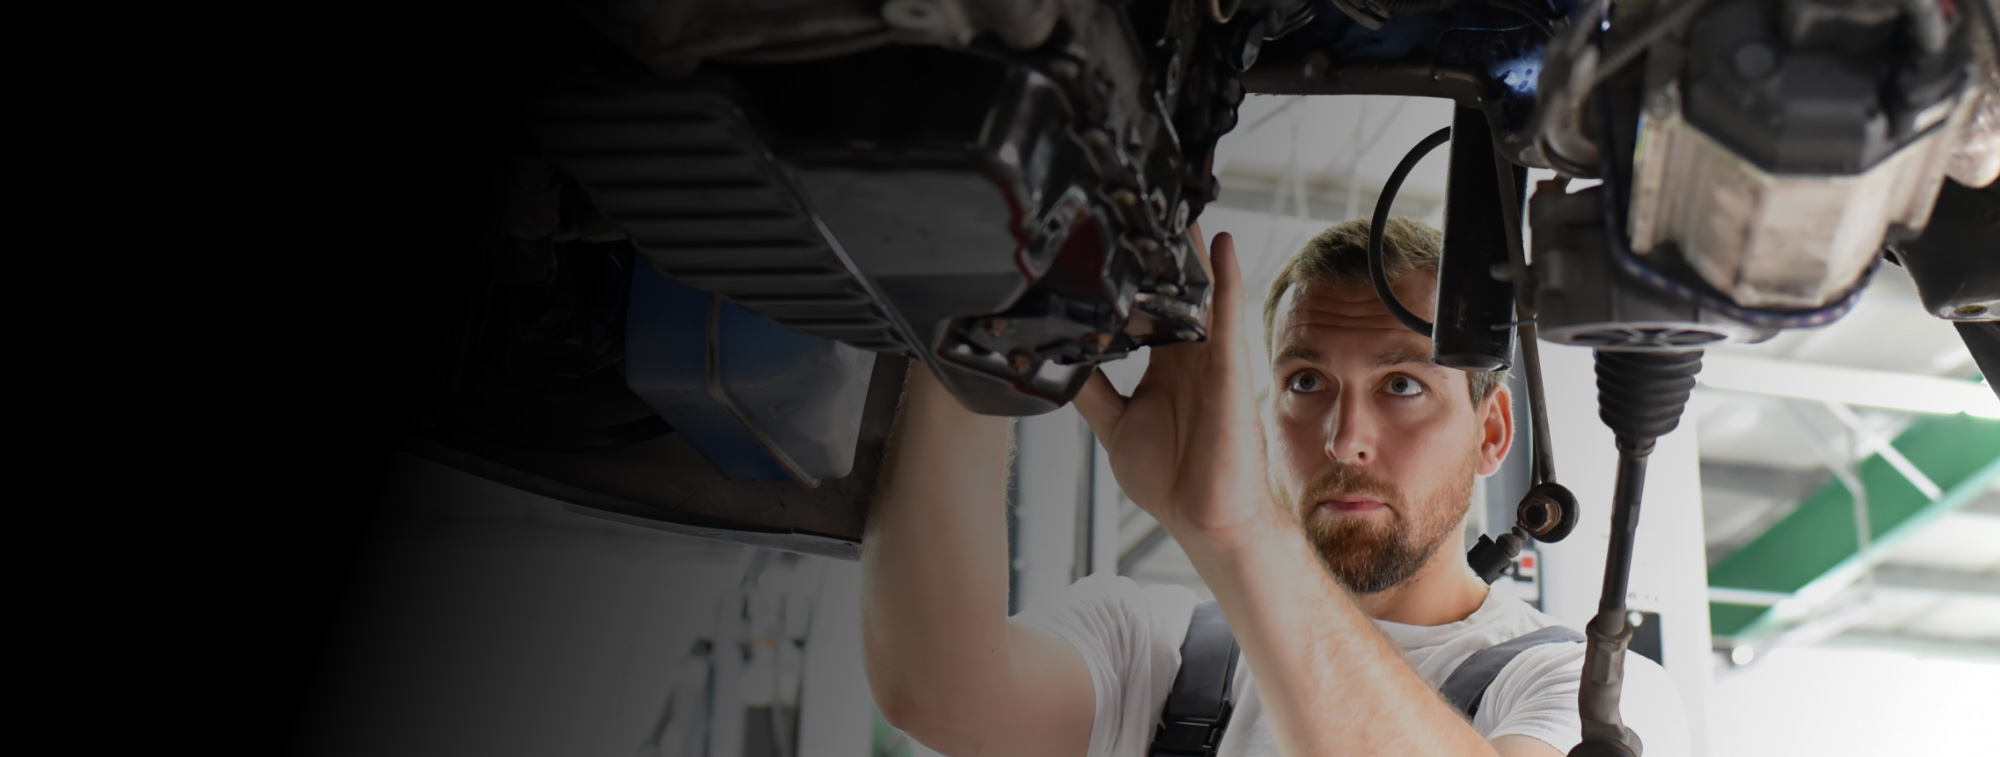 The Automotive Industry in Nova Scotia Needs a Skilled, Professional Workforce